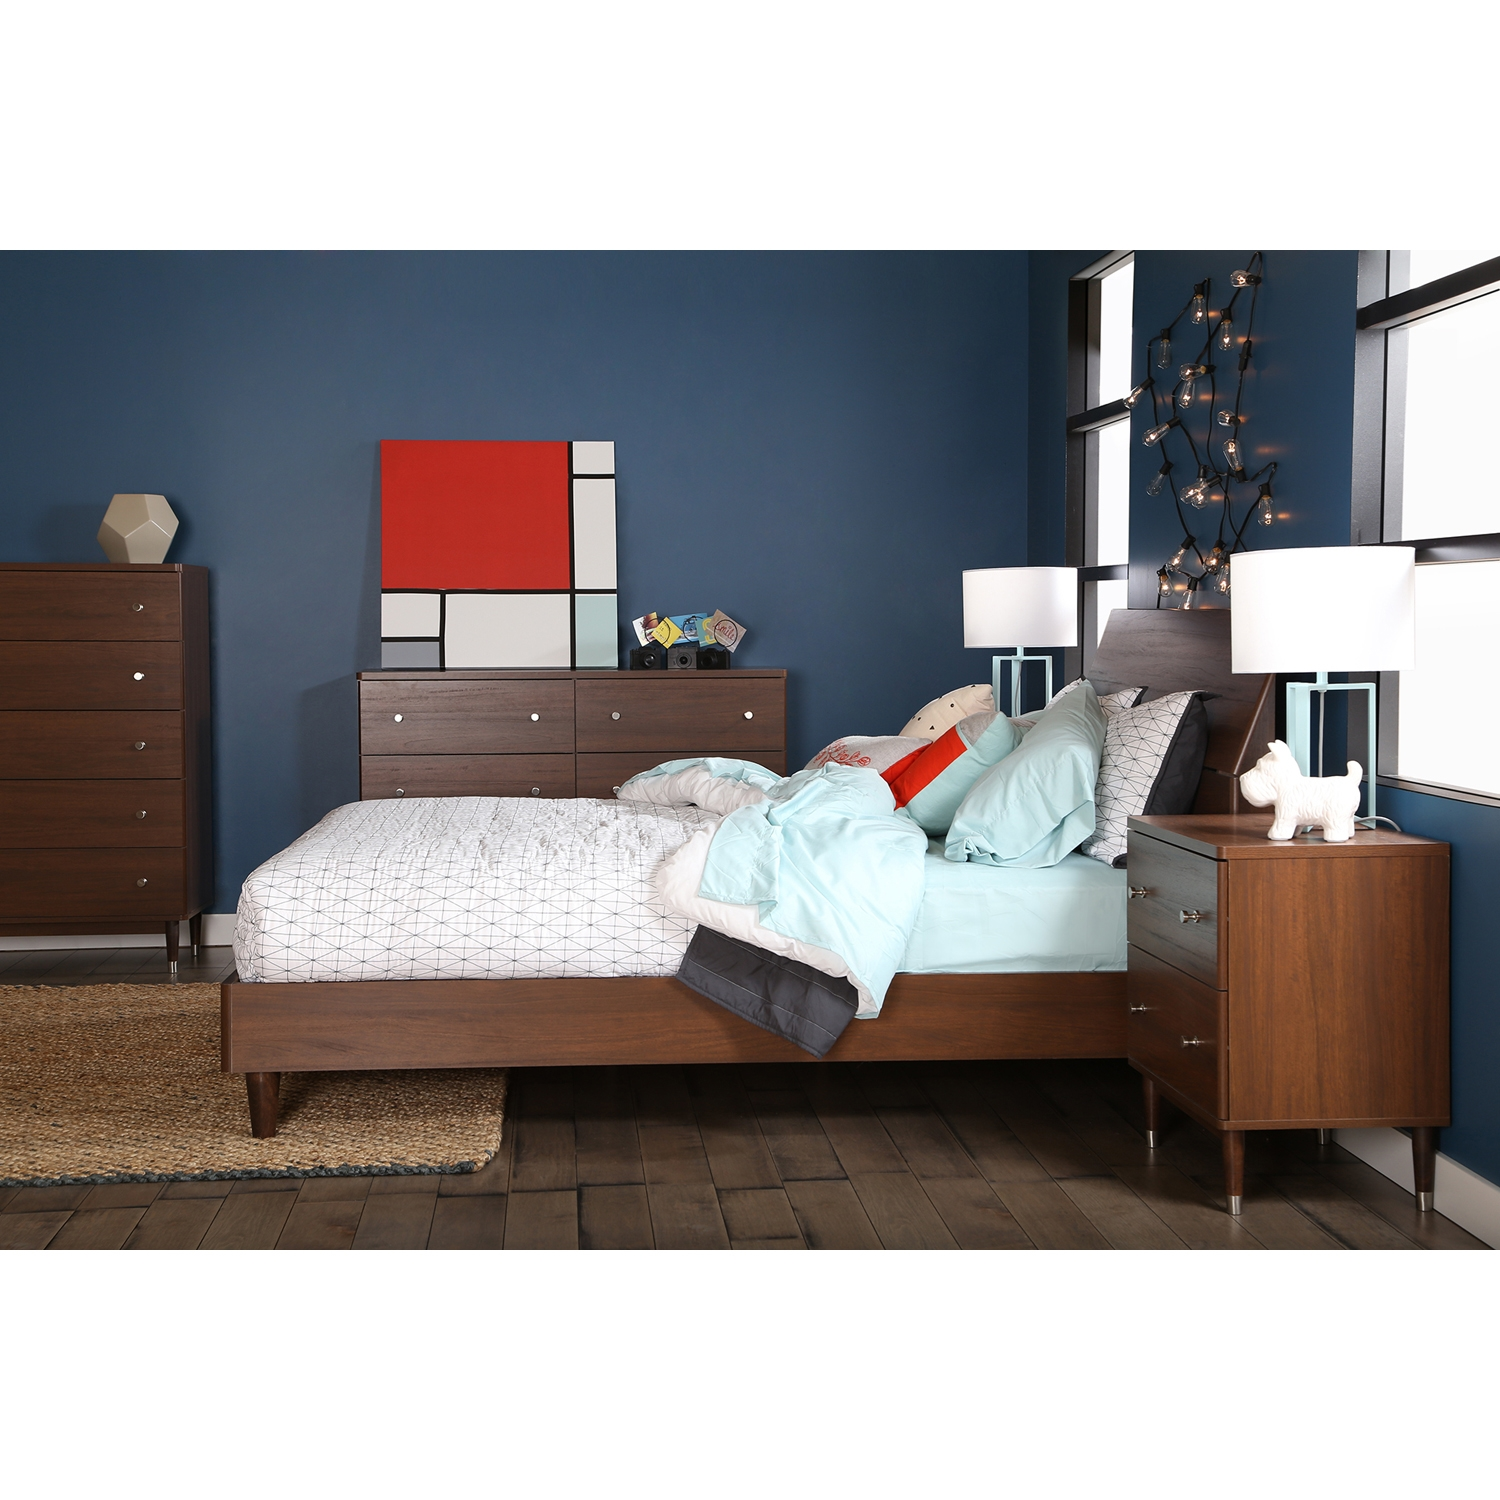 Olly Queen Platform Bedroom Set - Brown Walnut